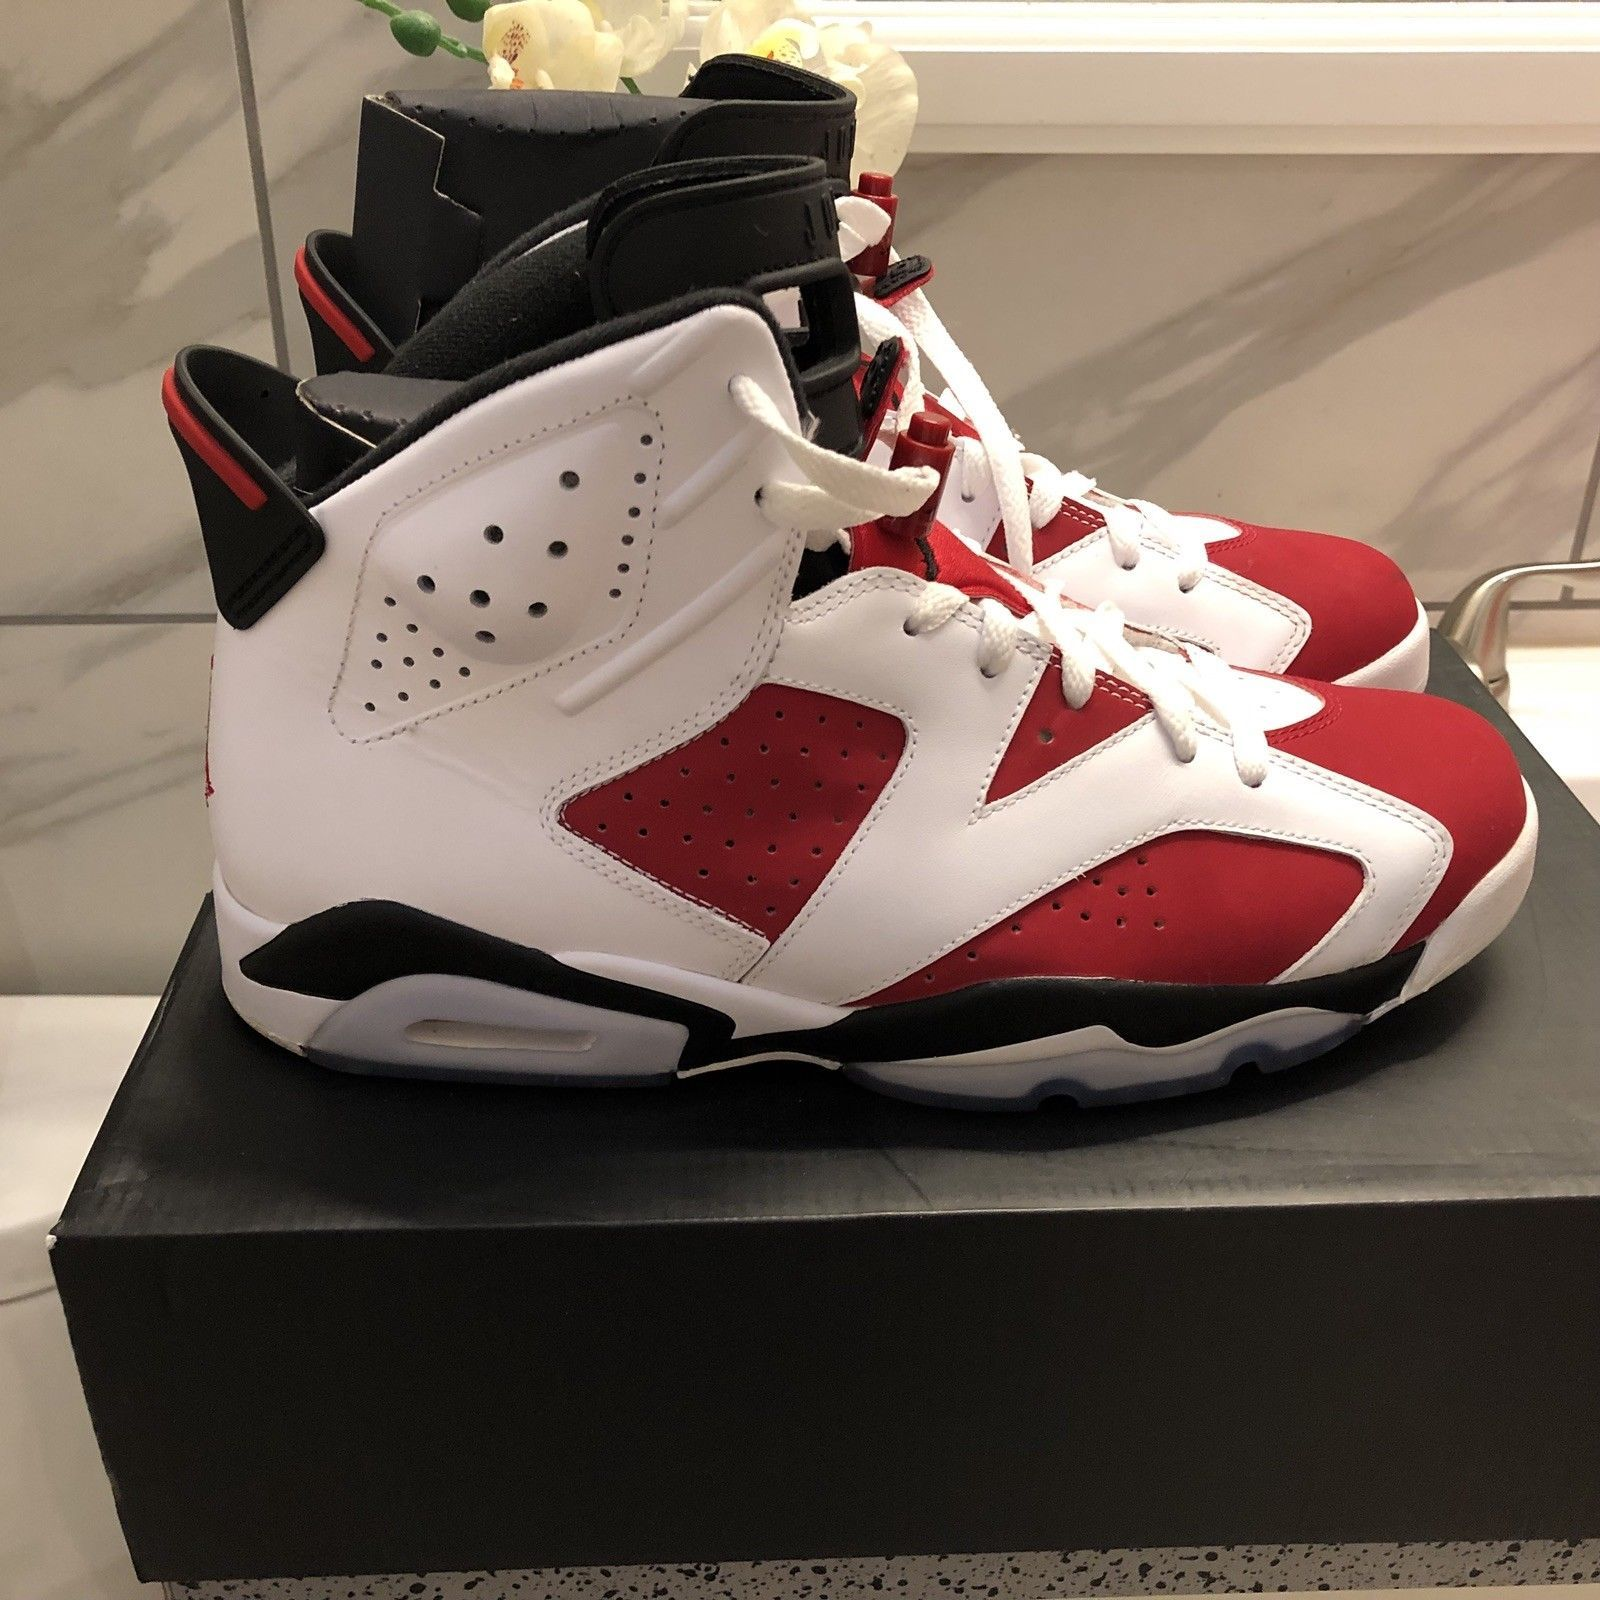 d86d7387bfe Nike Air Jordan VI Carmine size 11 retro 6 in 2019 | $neakers ...